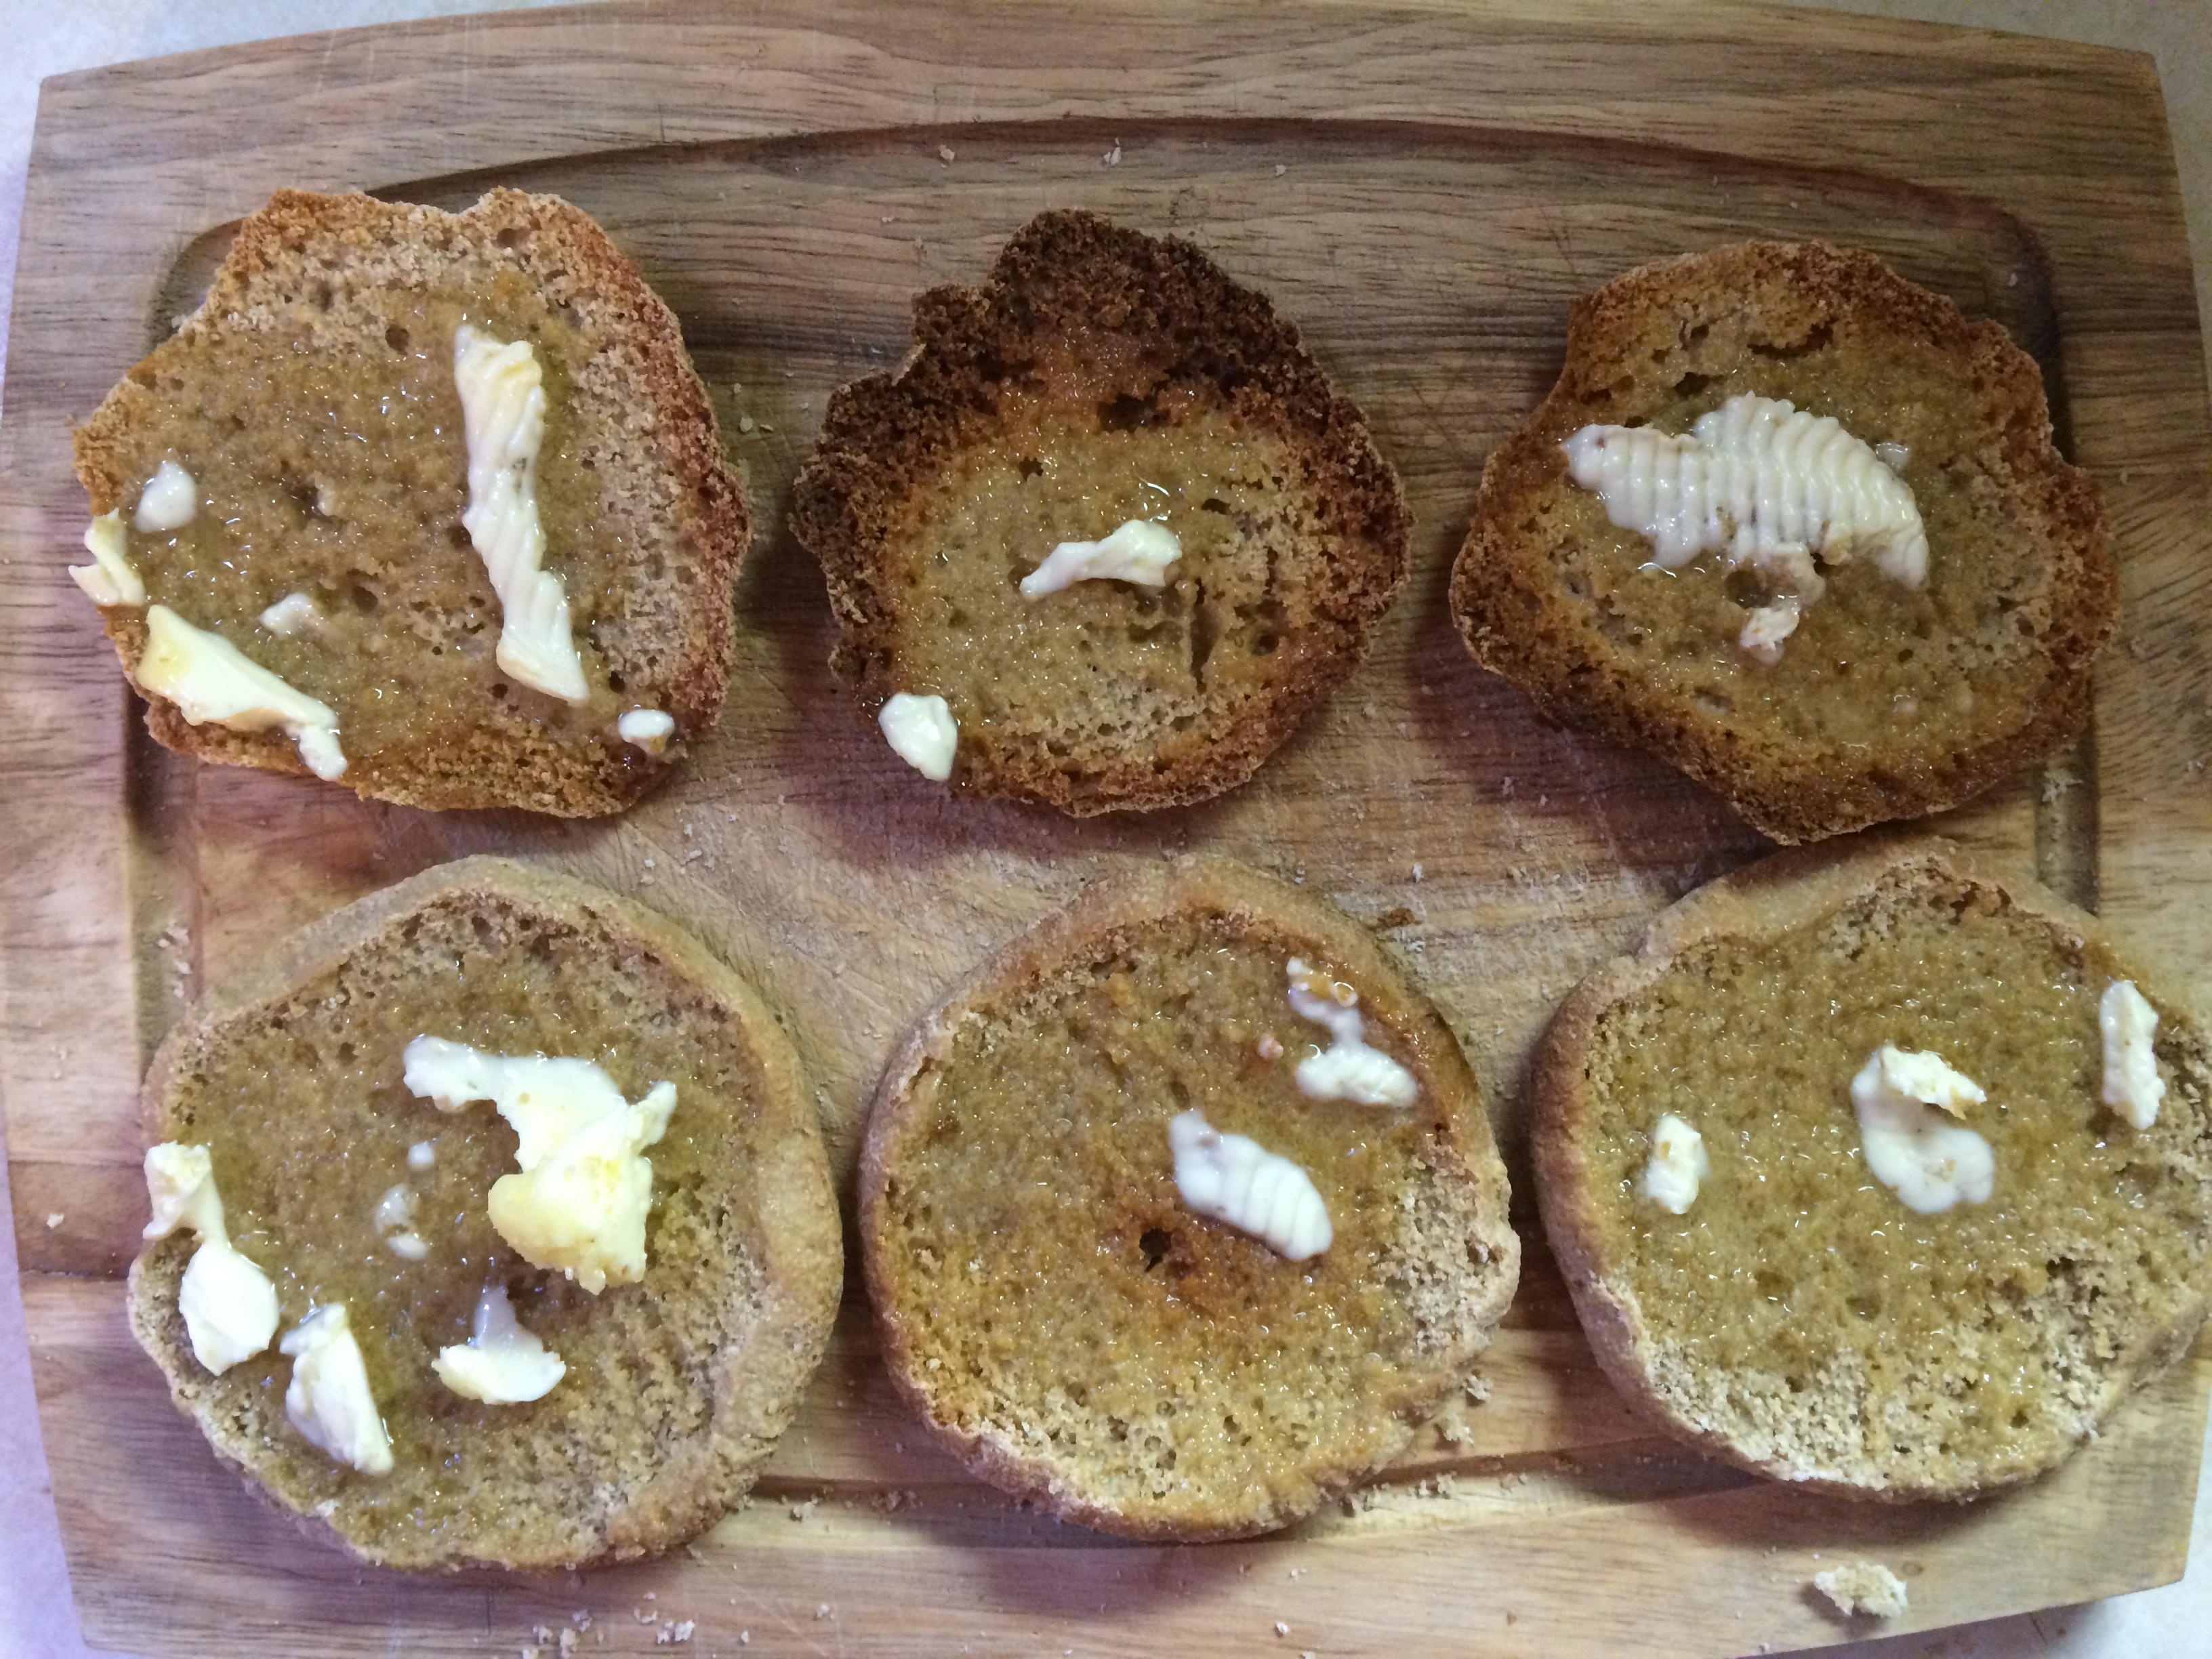 Toasted Sourdough Muffins with Butter